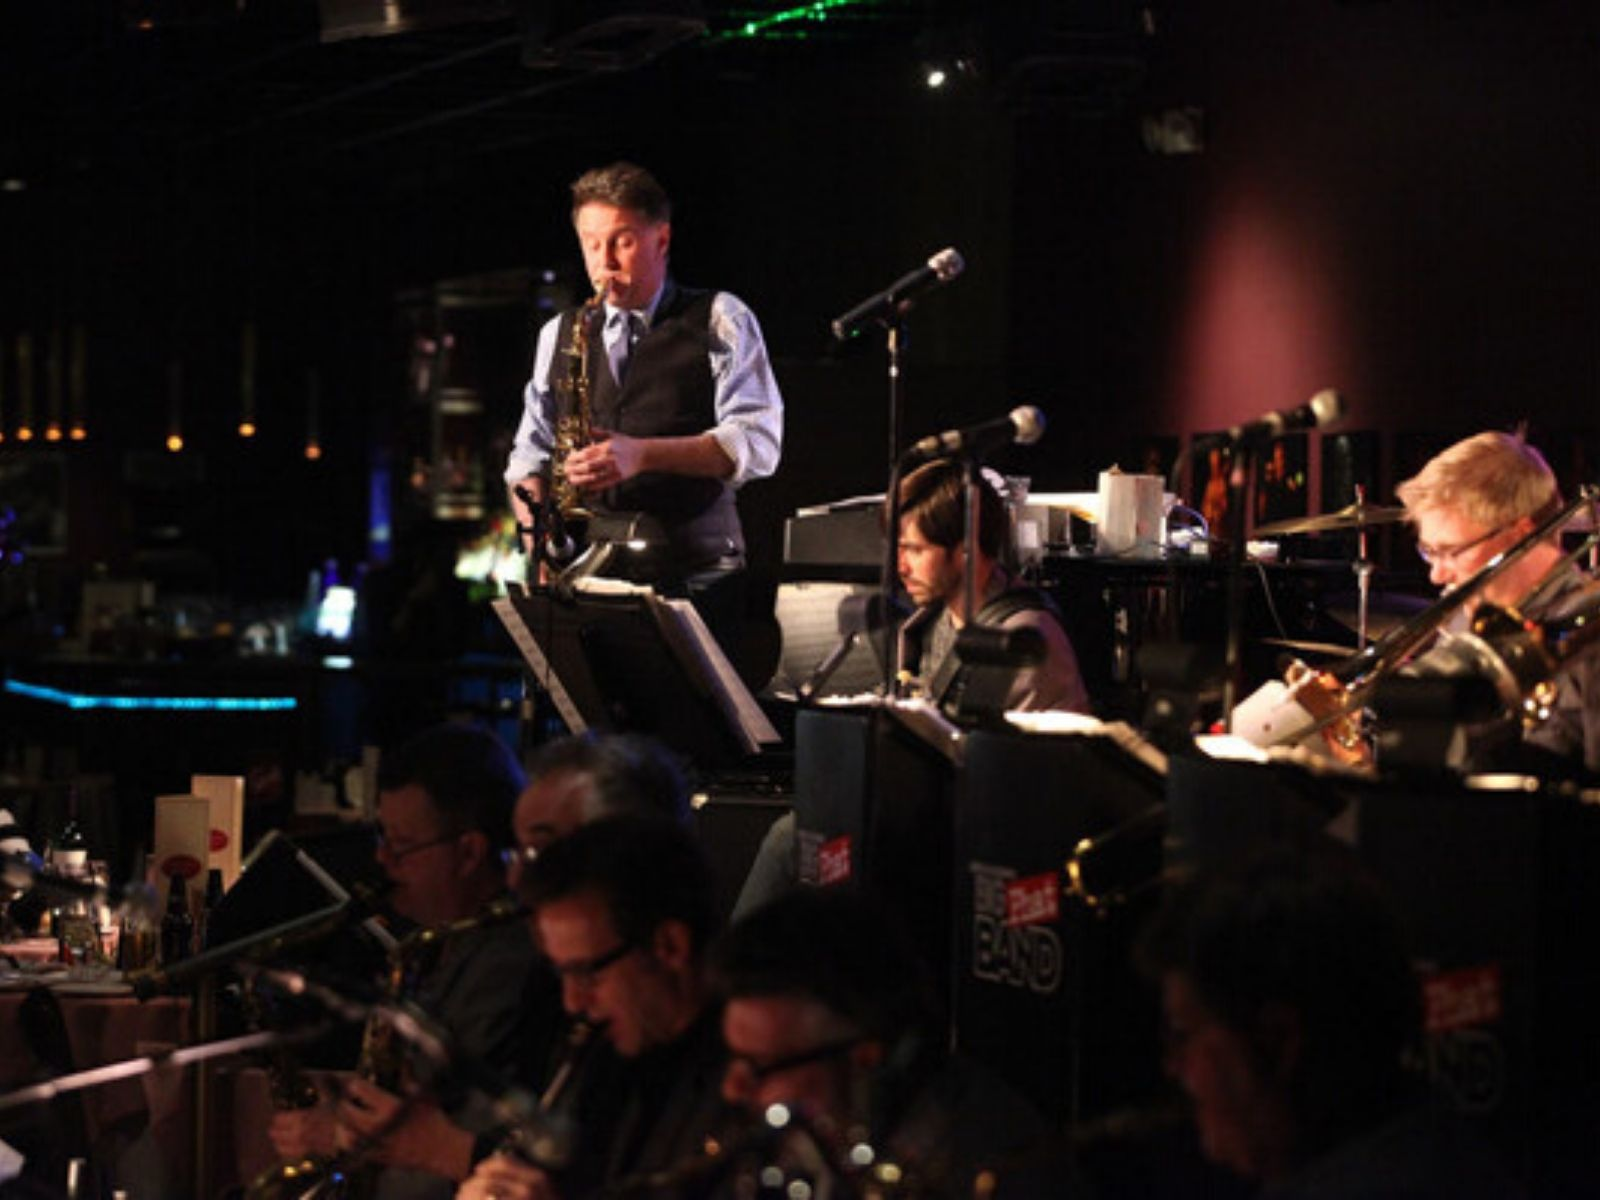 Gordon Goodwin with his Big Phat Band